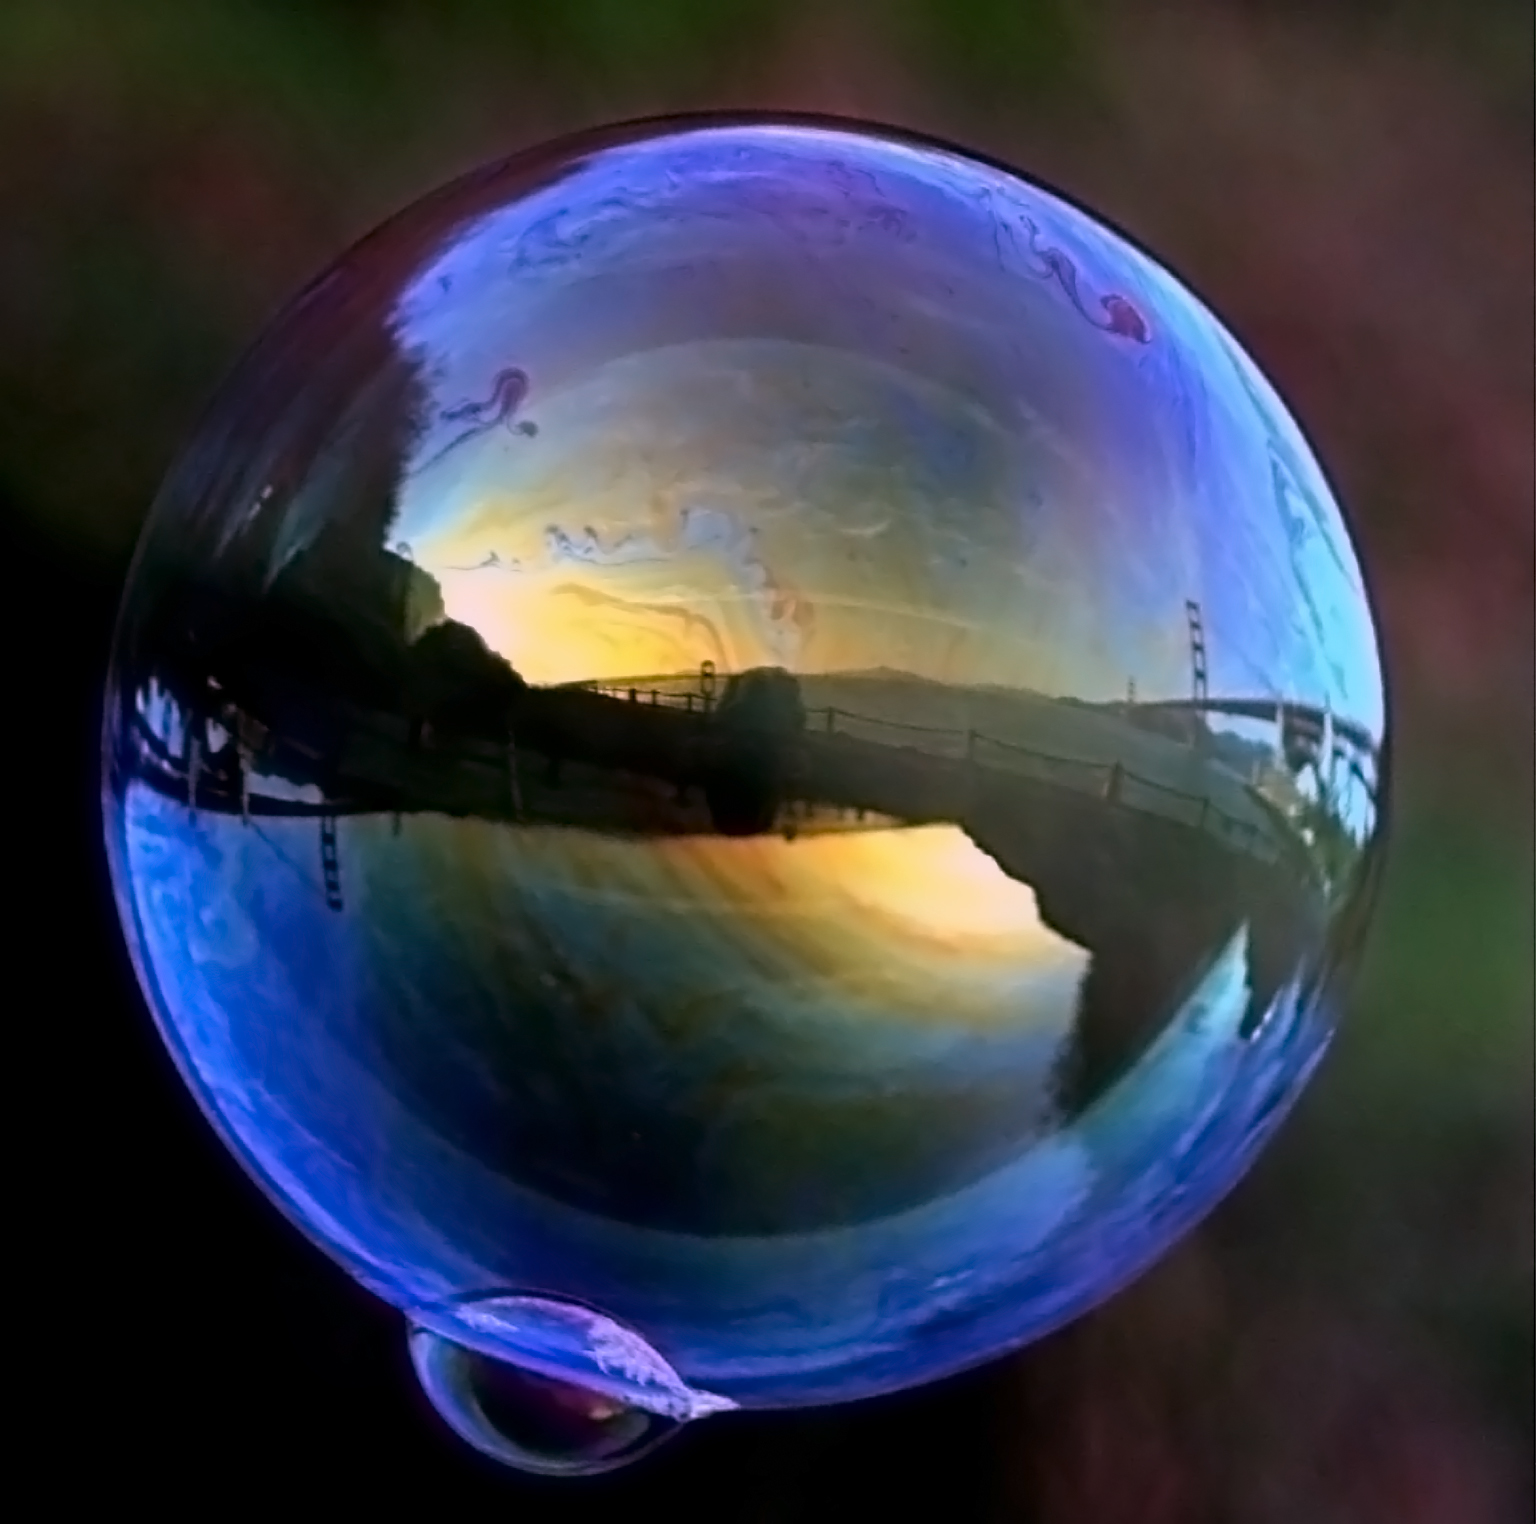 Golden Gate Bridge is reflected in a soap bubble